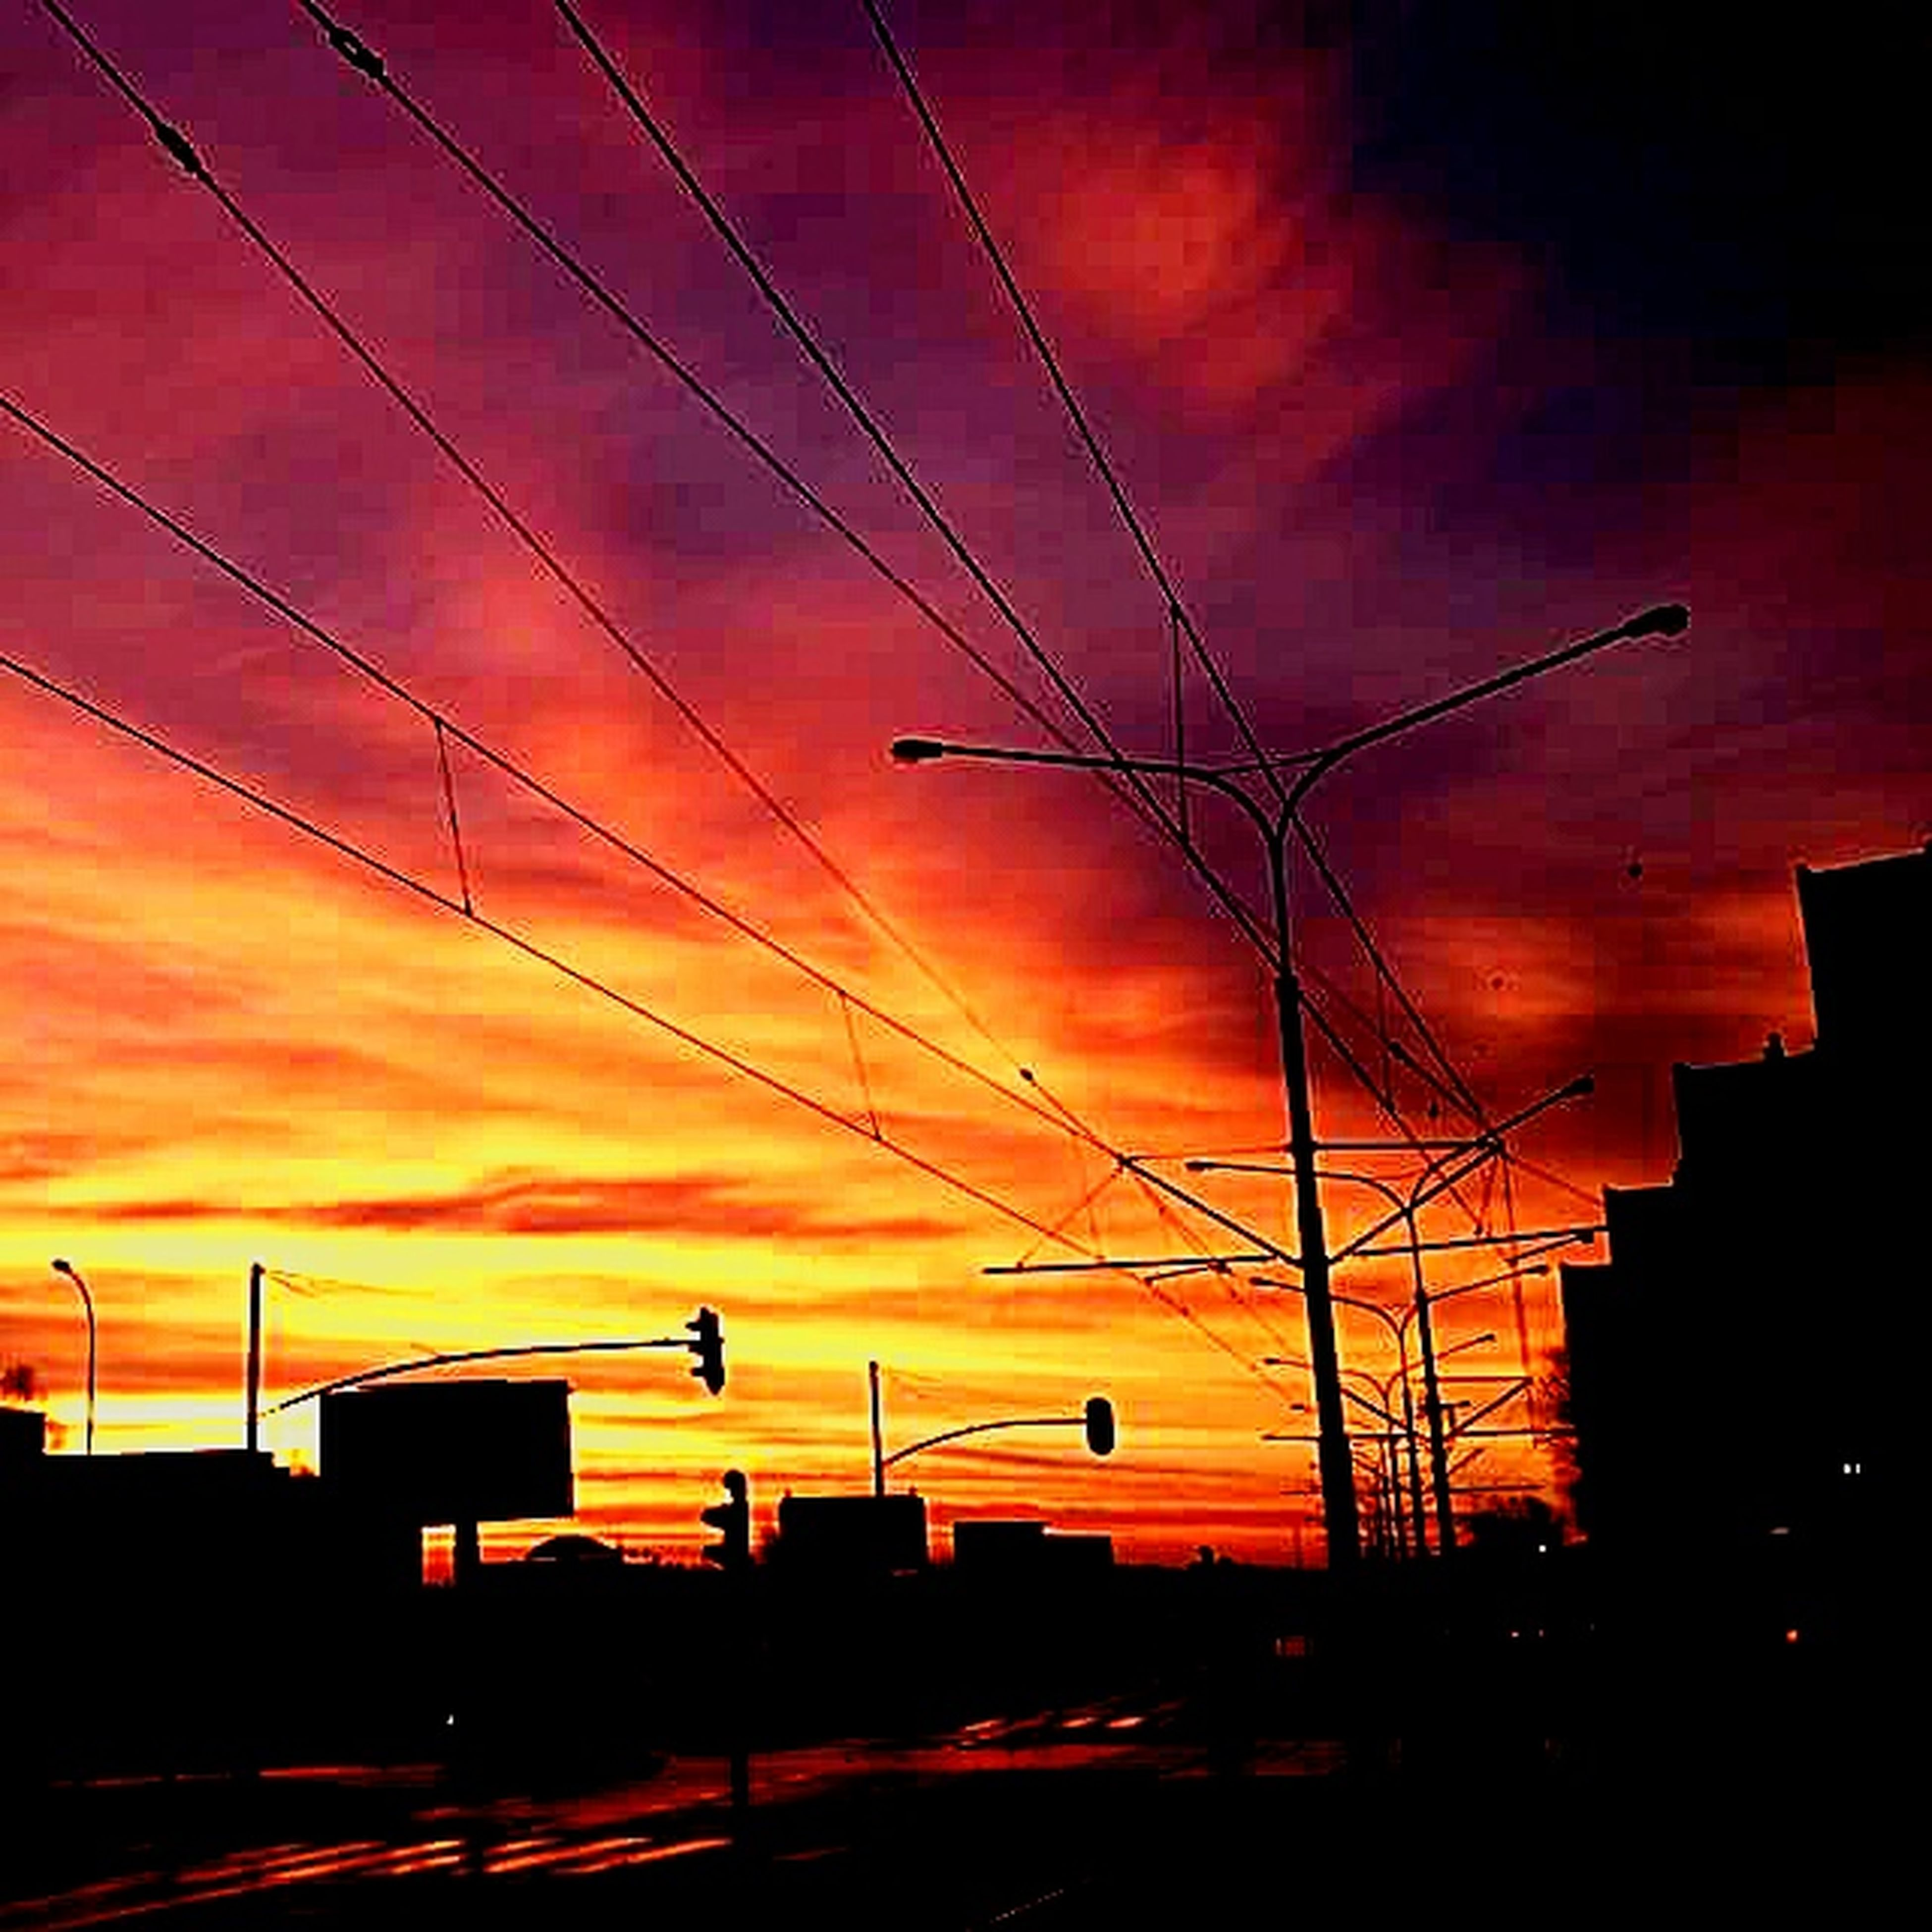 sunset, orange color, sky, silhouette, power line, low angle view, cloud - sky, built structure, cable, architecture, connection, building exterior, electricity pylon, electricity, power supply, street light, dramatic sky, lighting equipment, cloud, cloudy